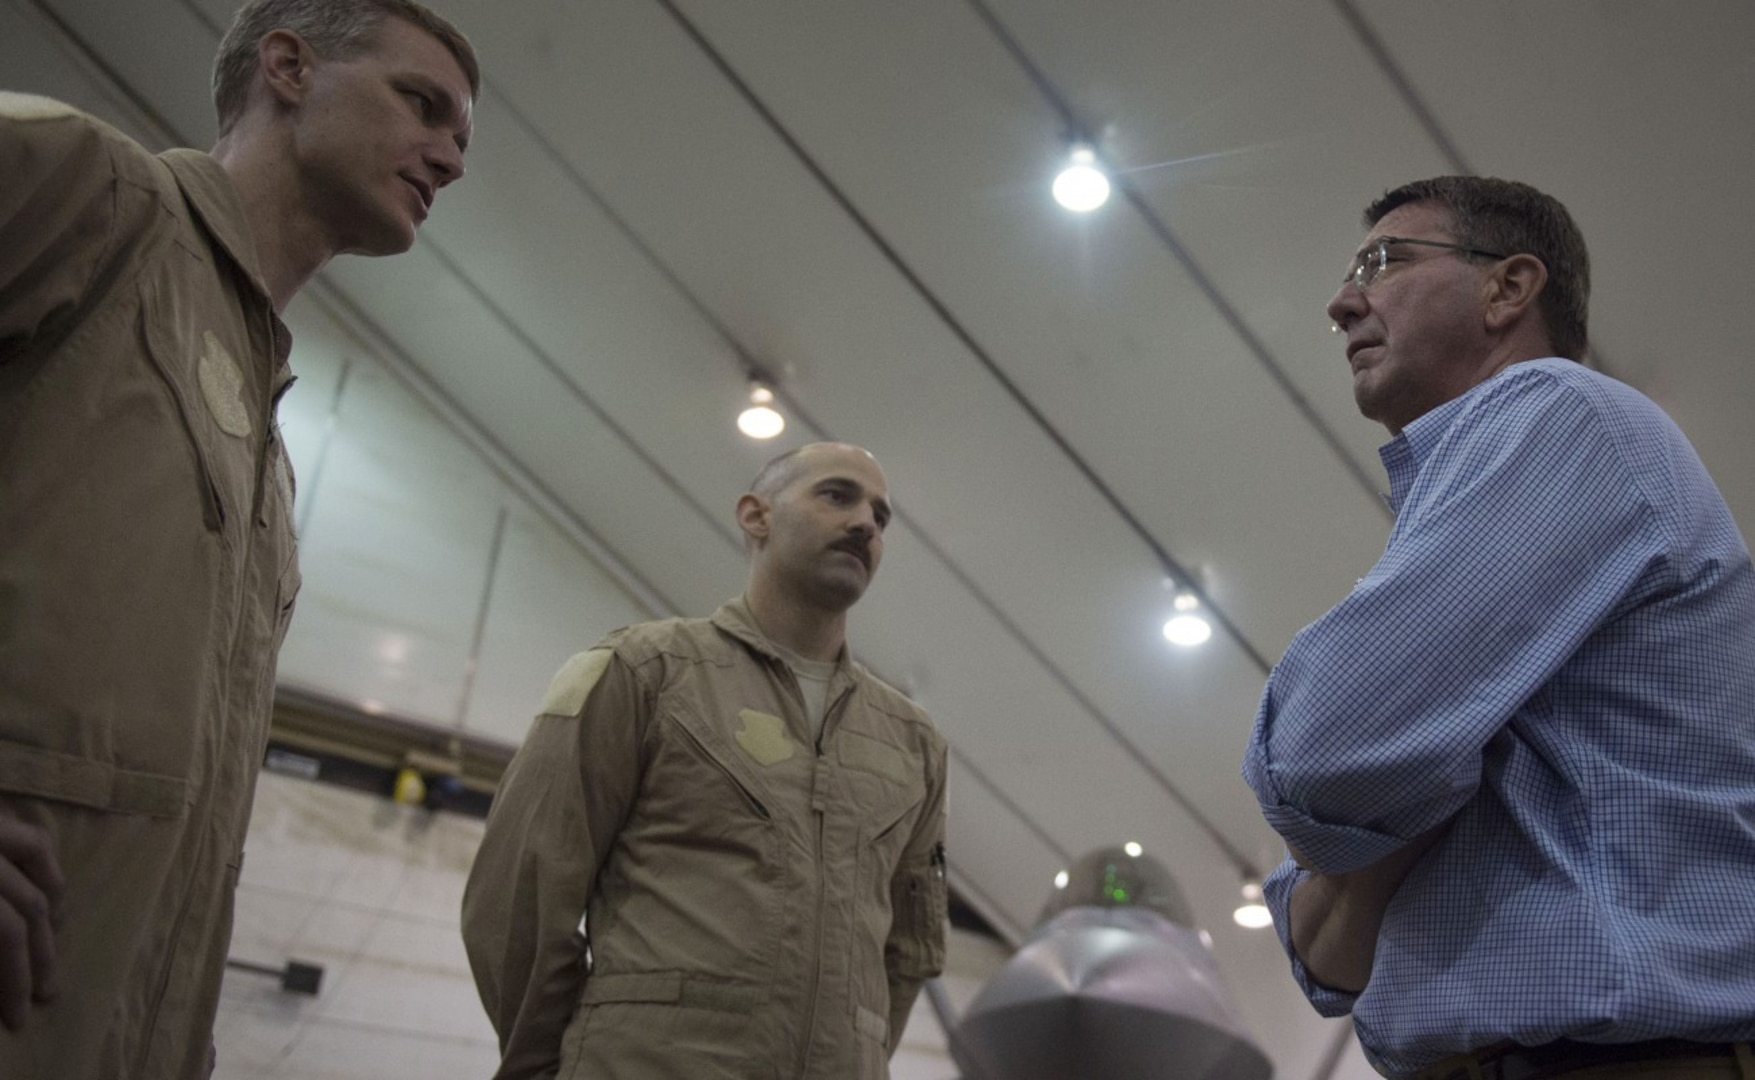 Defense Secretary Ash Carter talks to airmen during a tour of U.S. Air Force assets at Al-Dhafra Air Base in the United Arab Emirates, April 16, 2016. On his trip, Carter will visit the United Arab Emirates and Saudi Arabia to assist the lasting defeat of the Islamic State of Iraq and the Levant, and participate in the U.S. Gulf Cooperation Council defense meeting. DoD photo by Air Force Senior Ma